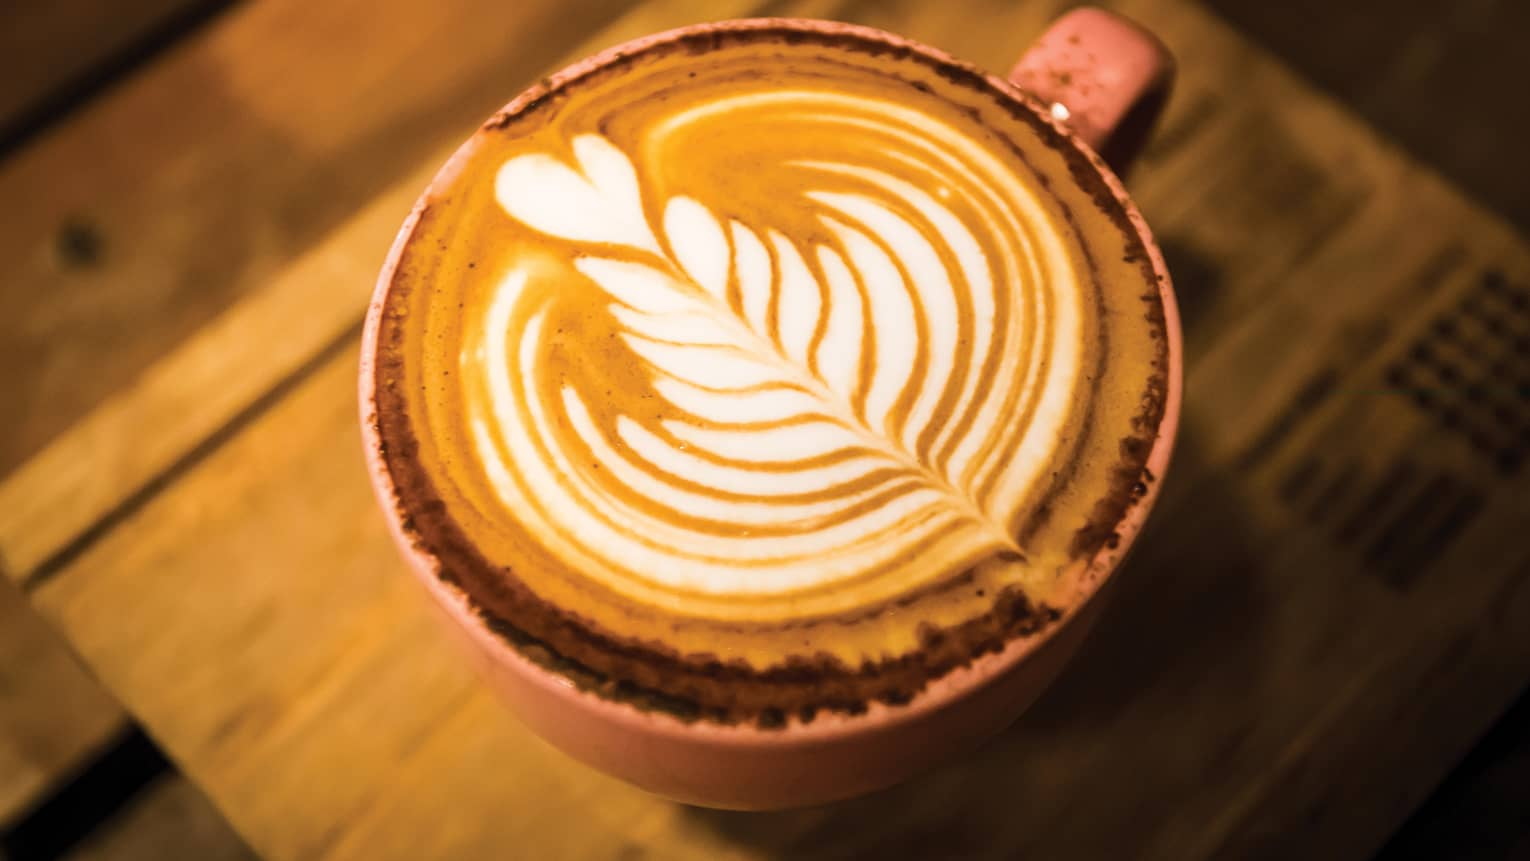 Close-up of latte coffee with flower design in foam